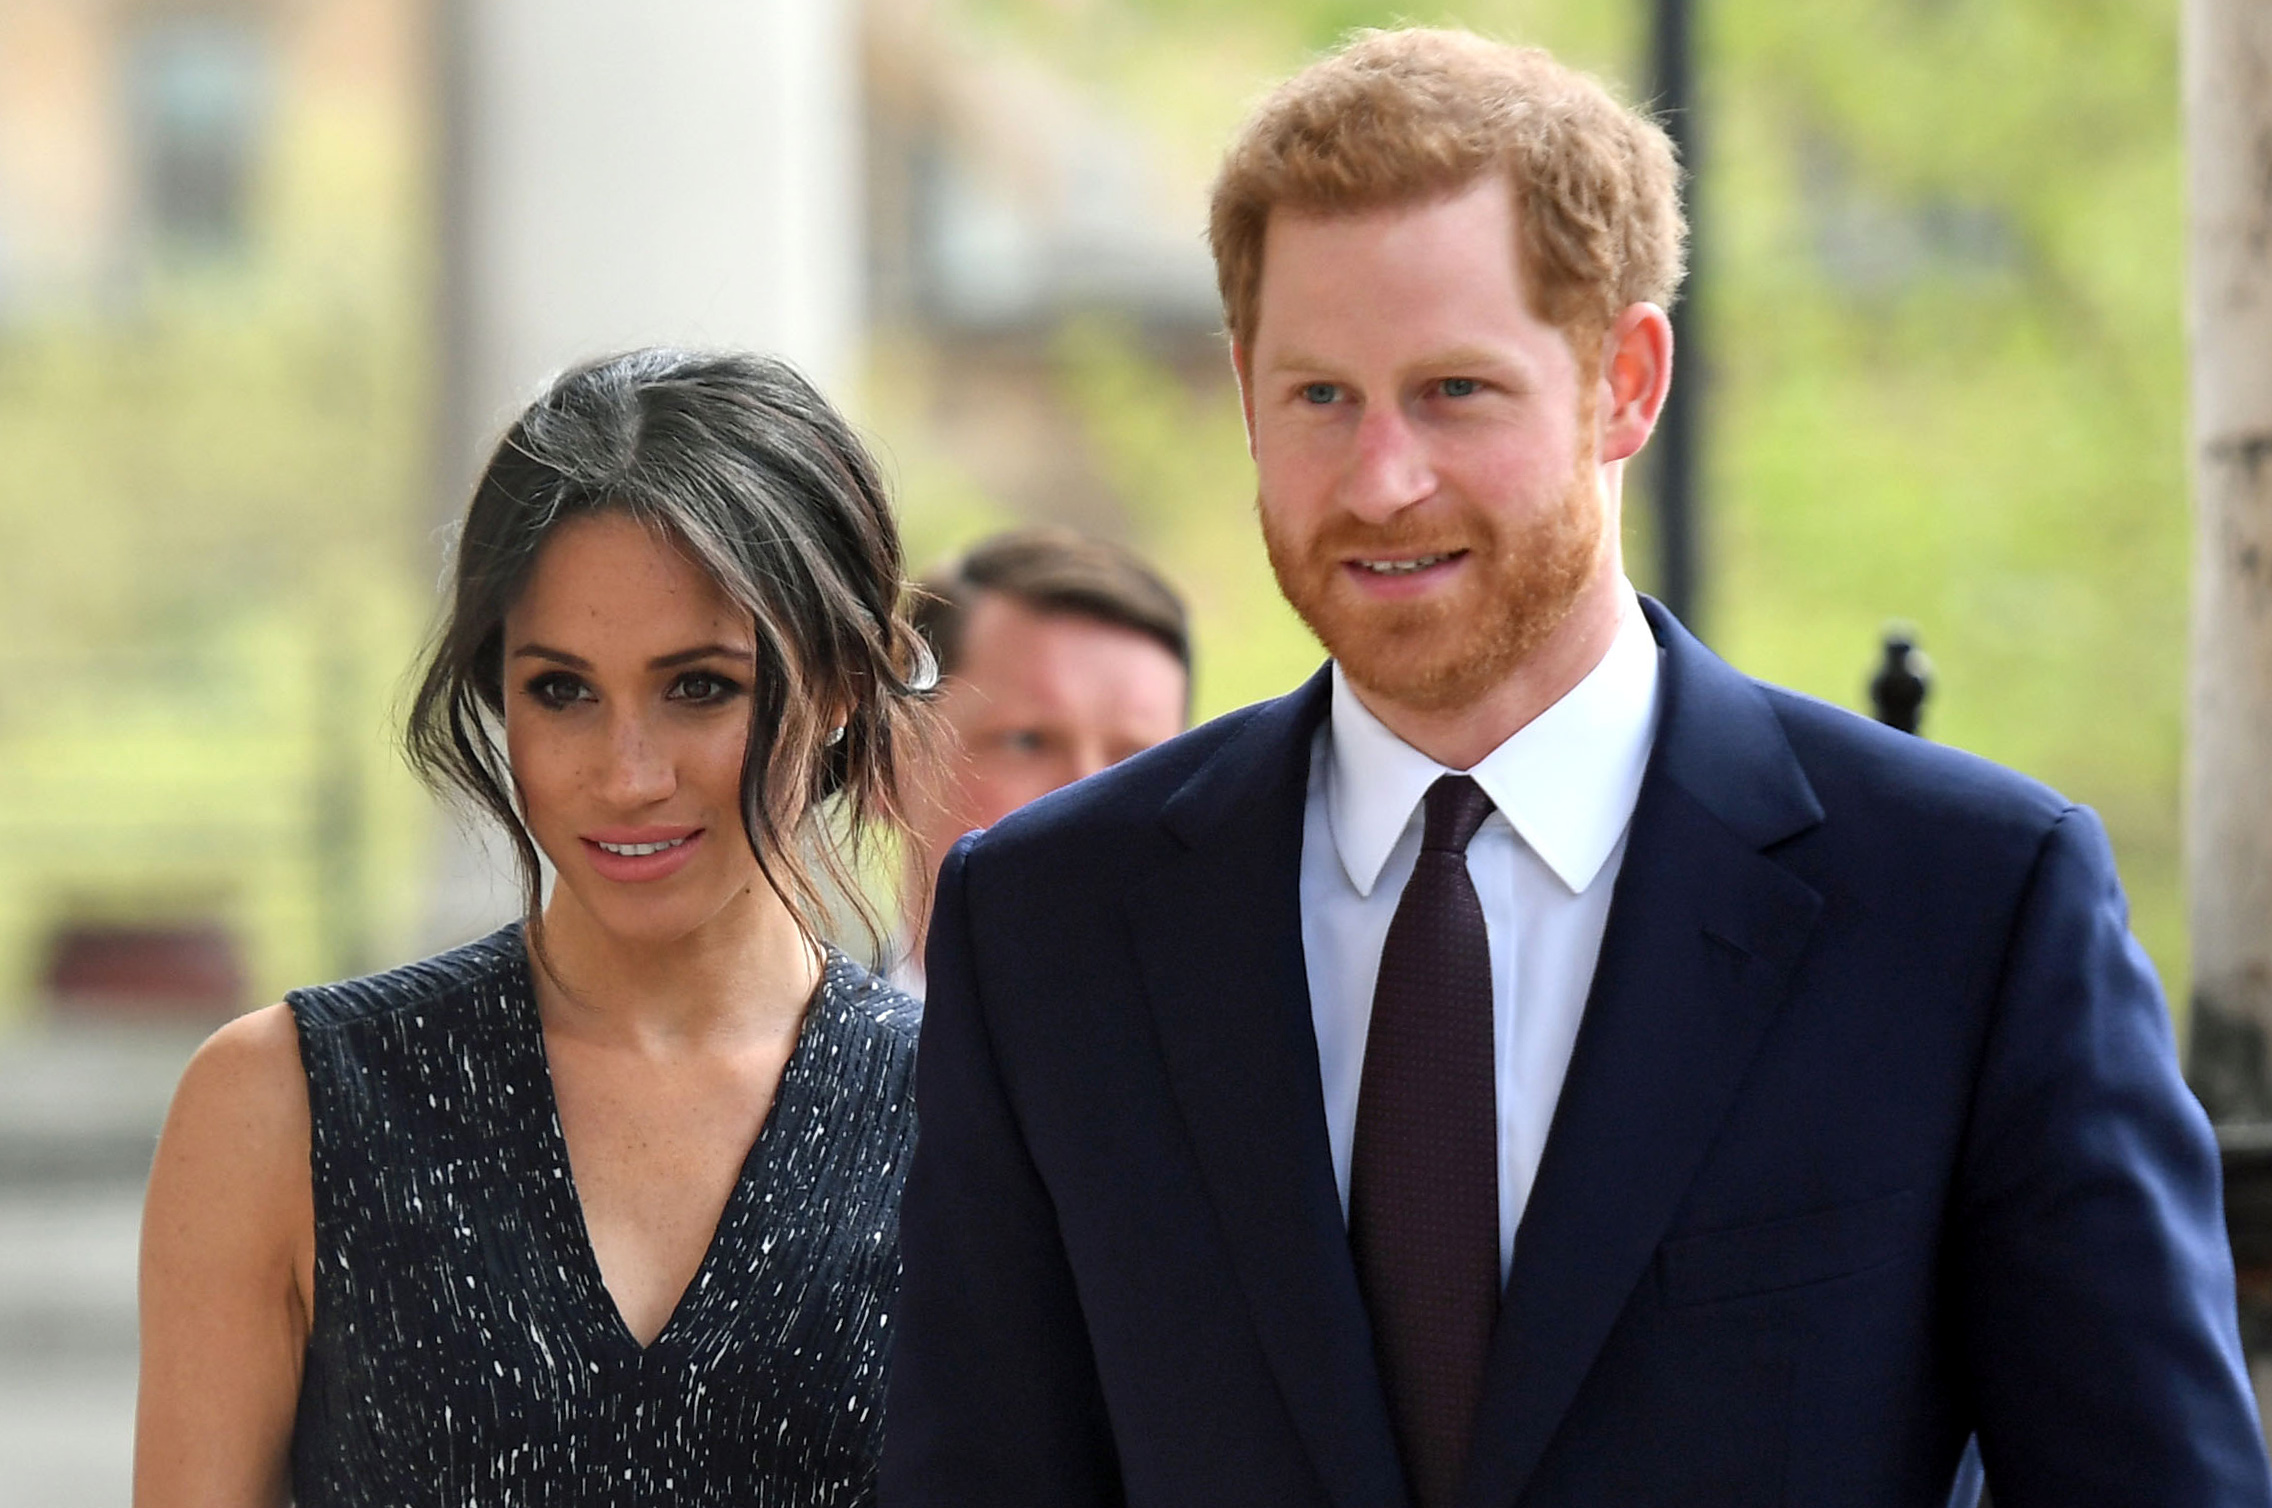 Buckingham Palace will no longer comment on Prince Harry and Meghan Markle | Marie Claire